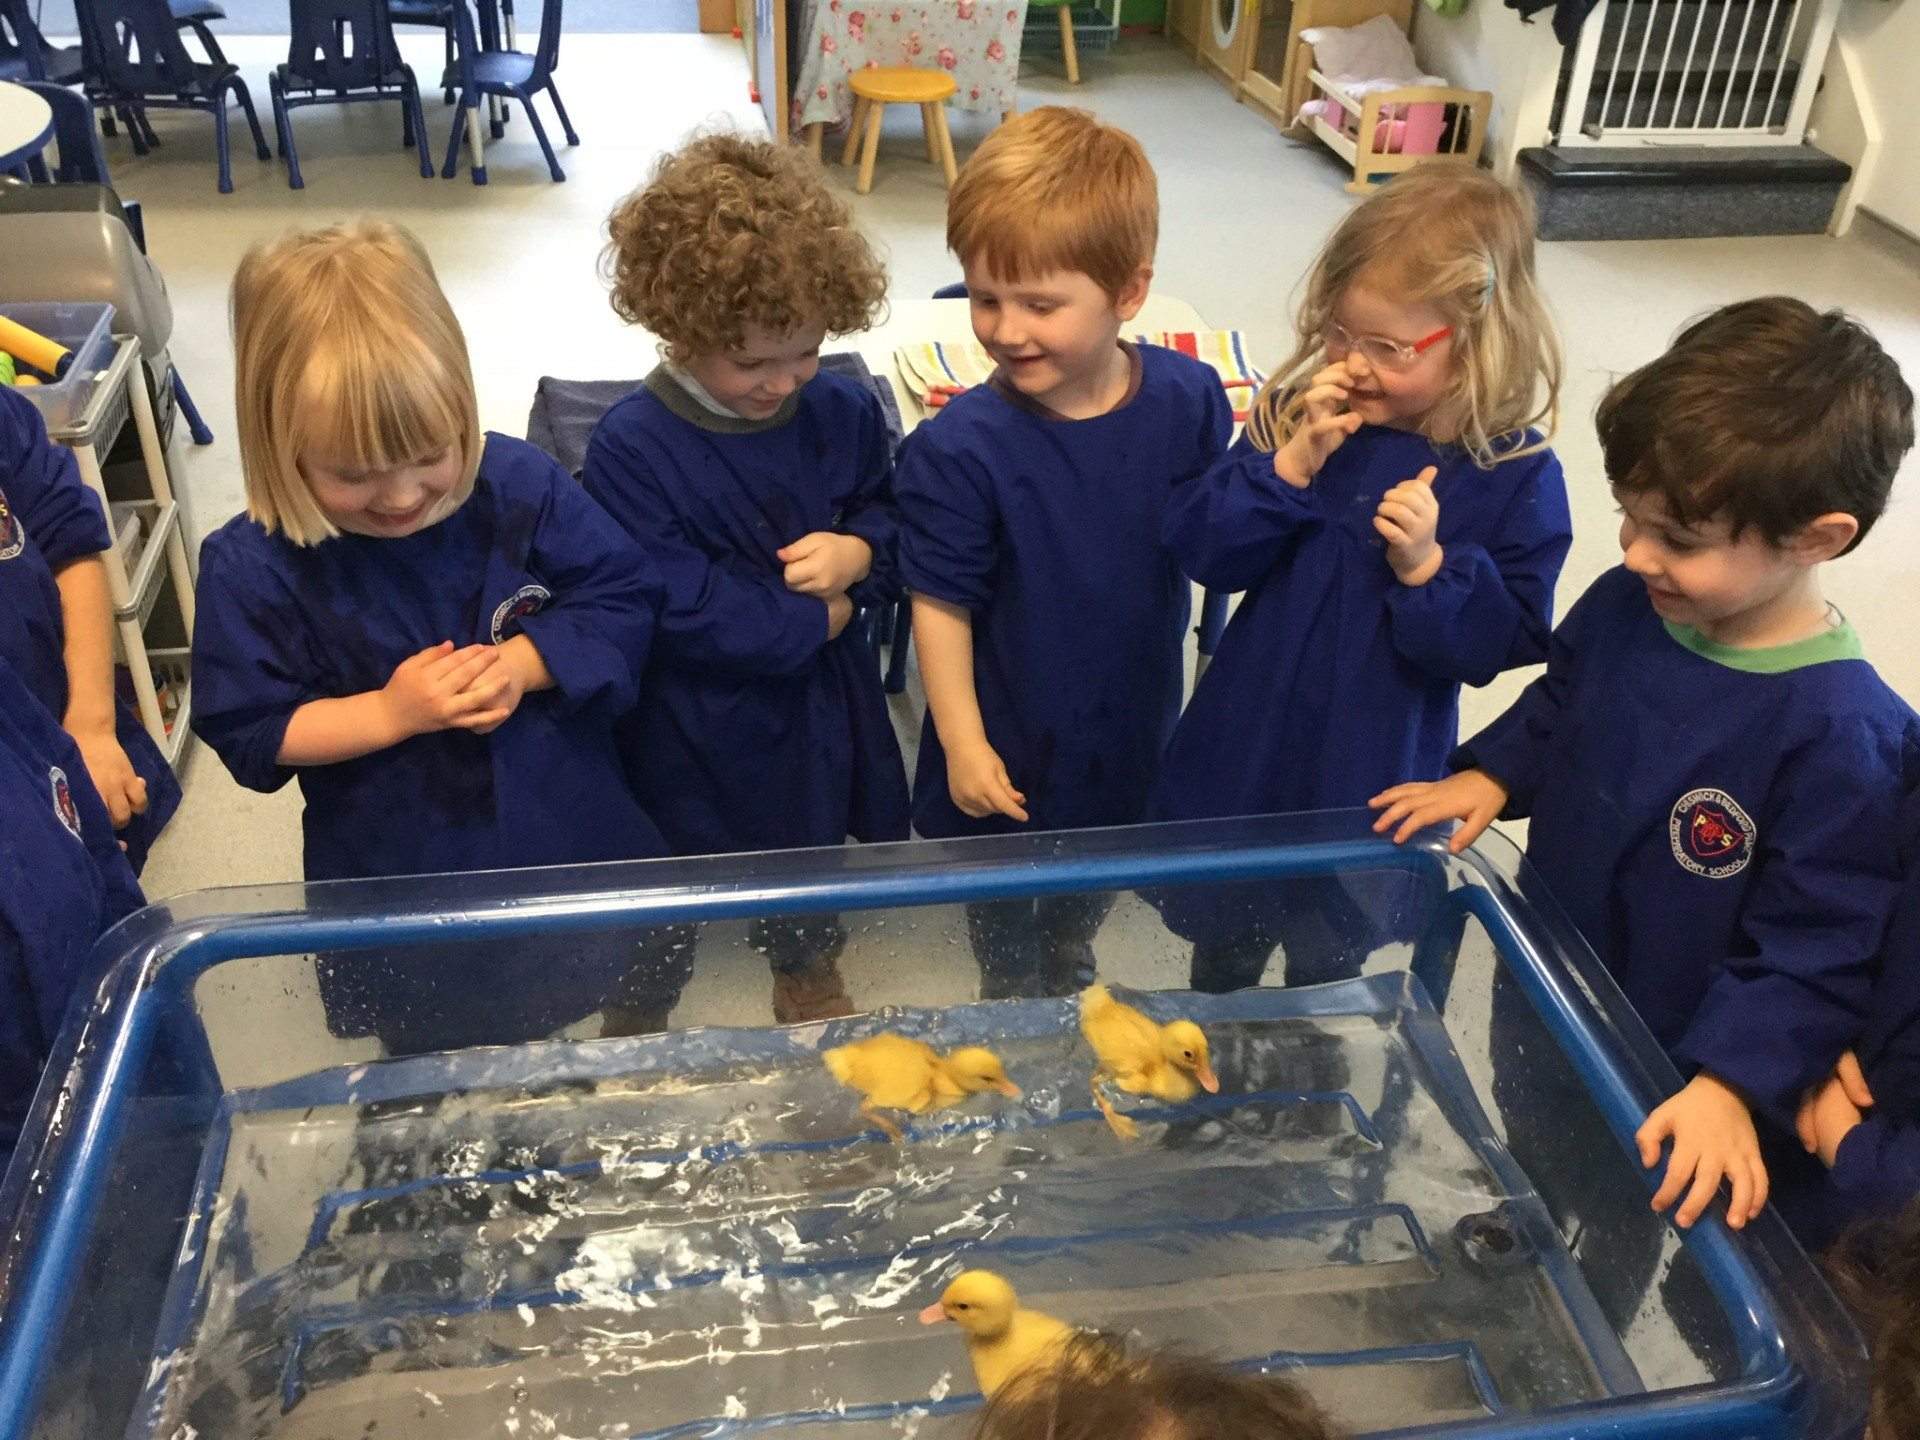 Delightful Ducklings and the Super Science Workshop